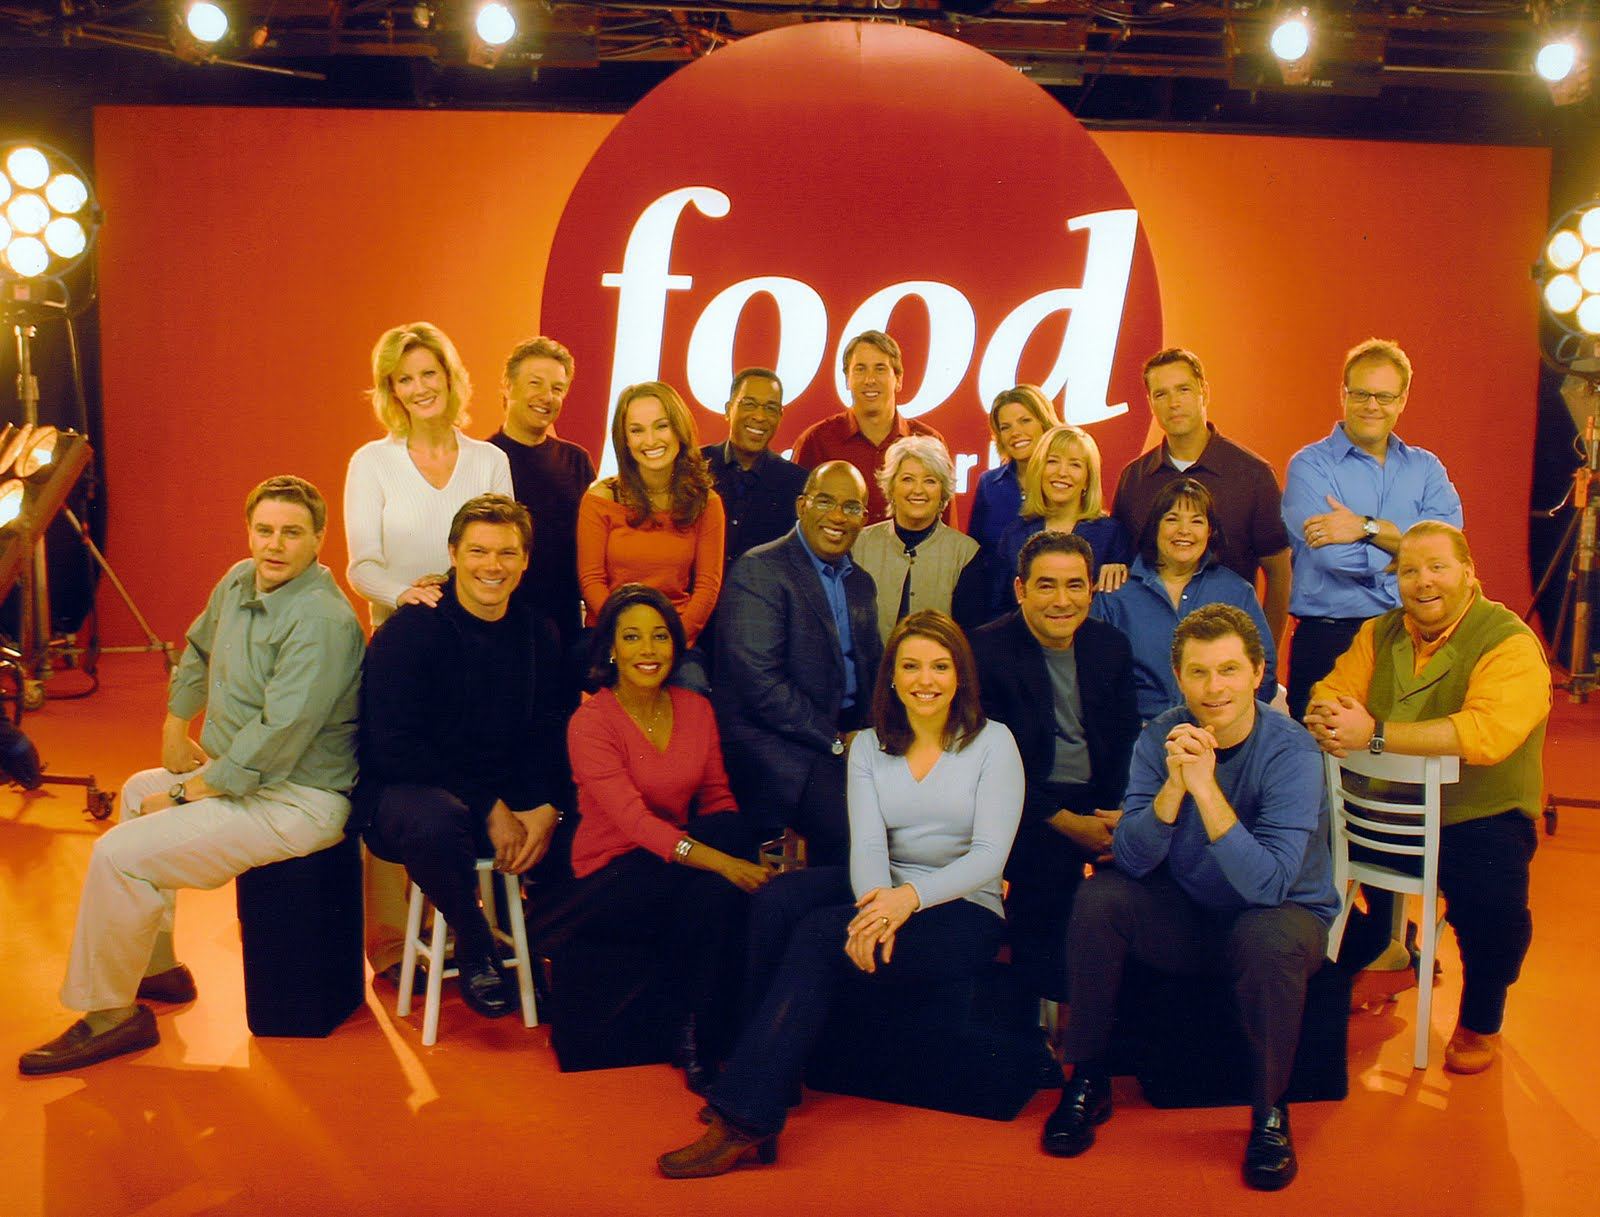 Tv Chefs On The Food Network